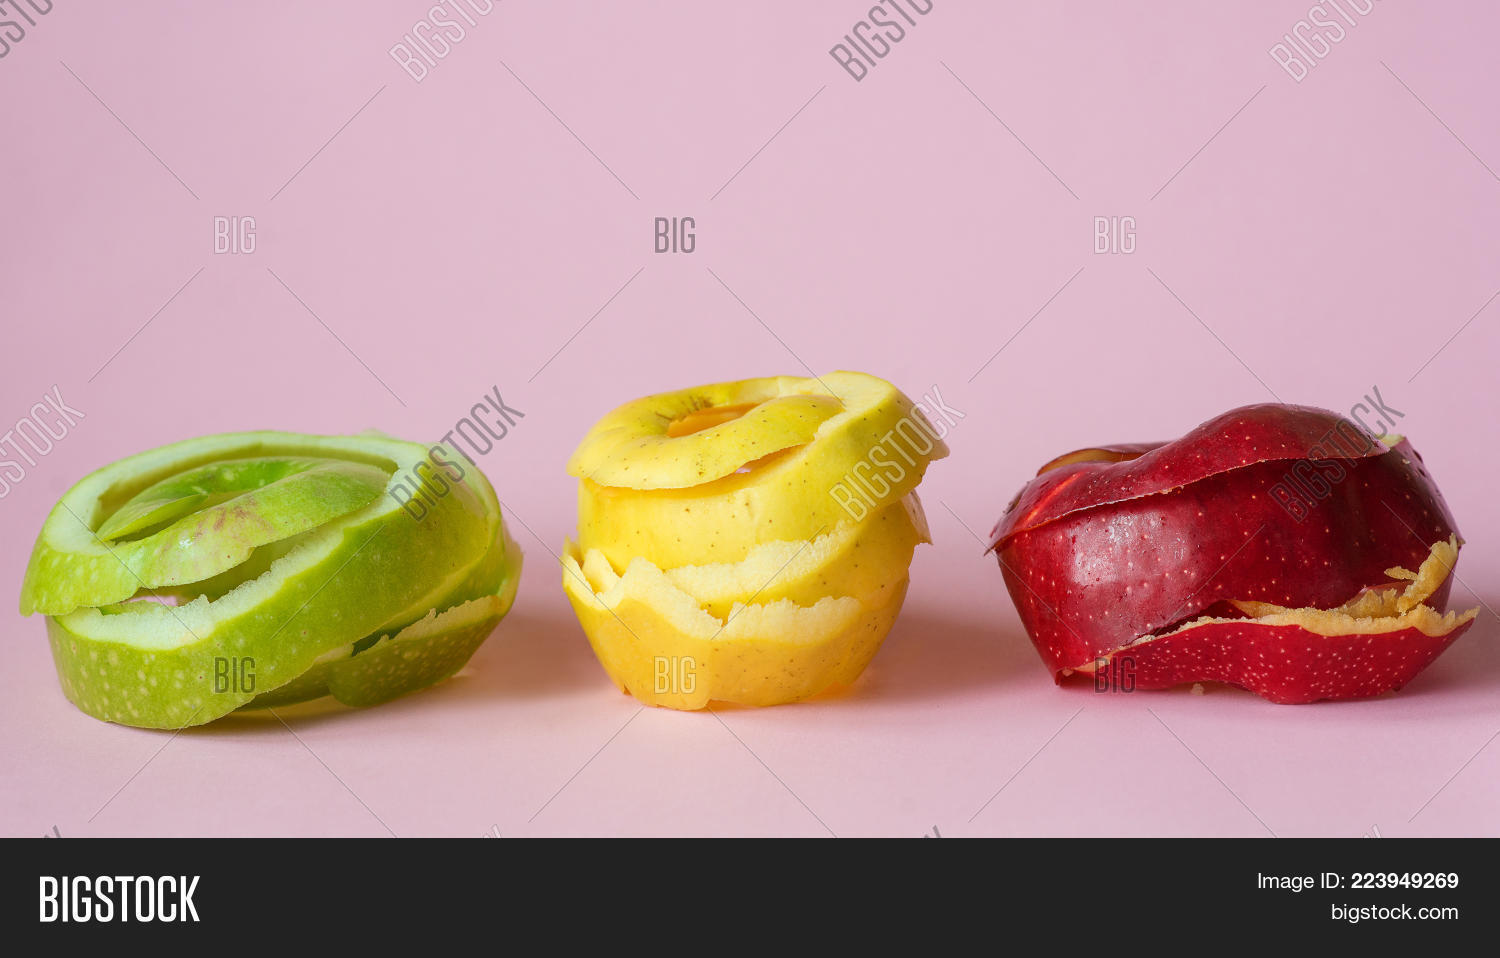 Red Green Yellow Image Photo Free Trial Bigstock